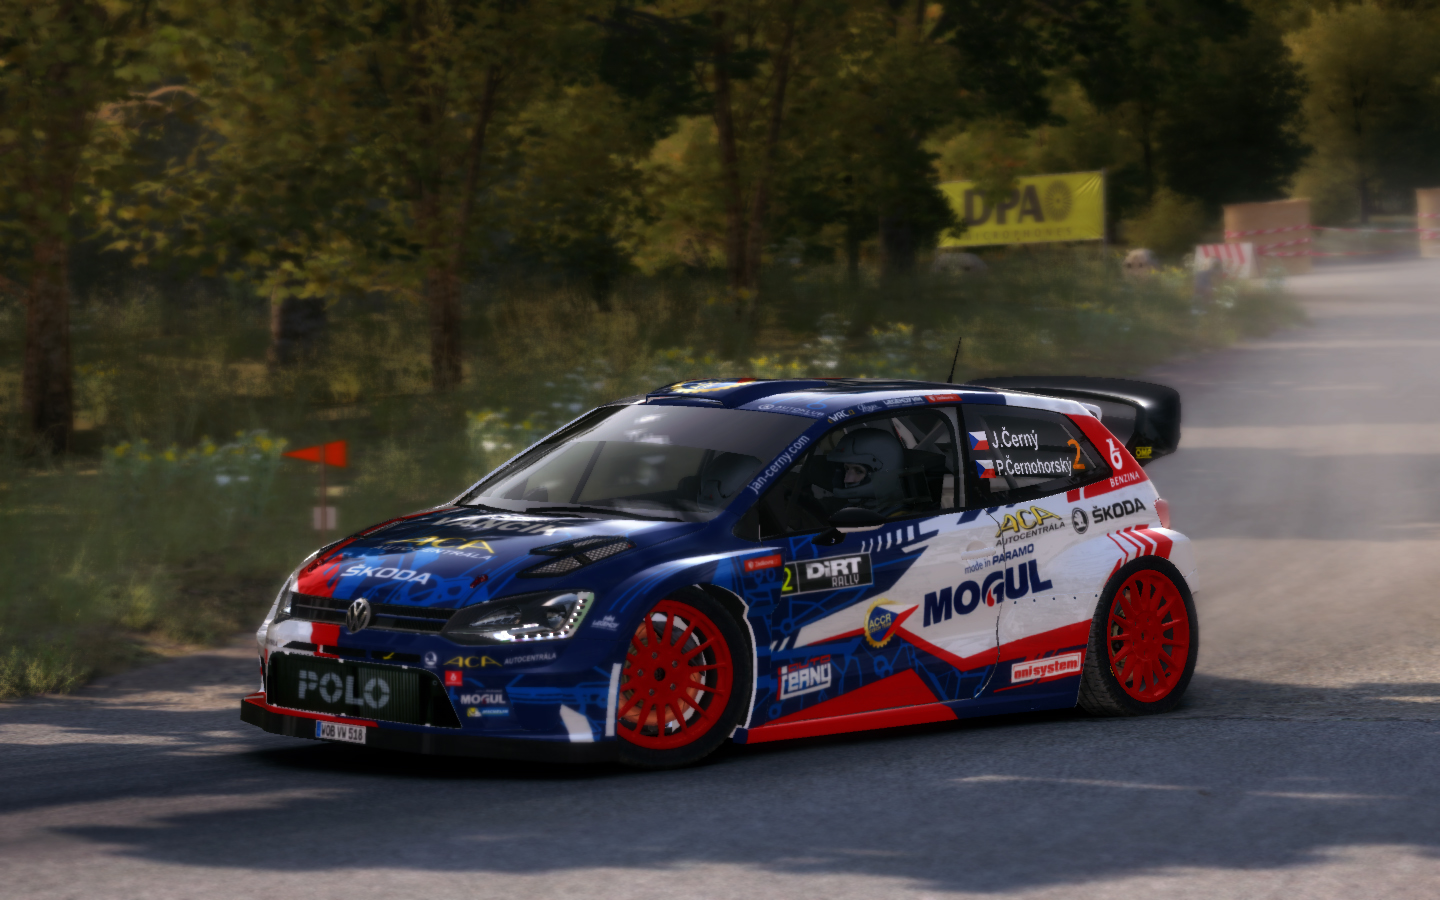 Vw Polo Wrc Mogul Racing 2k17 Racedepartment Latest